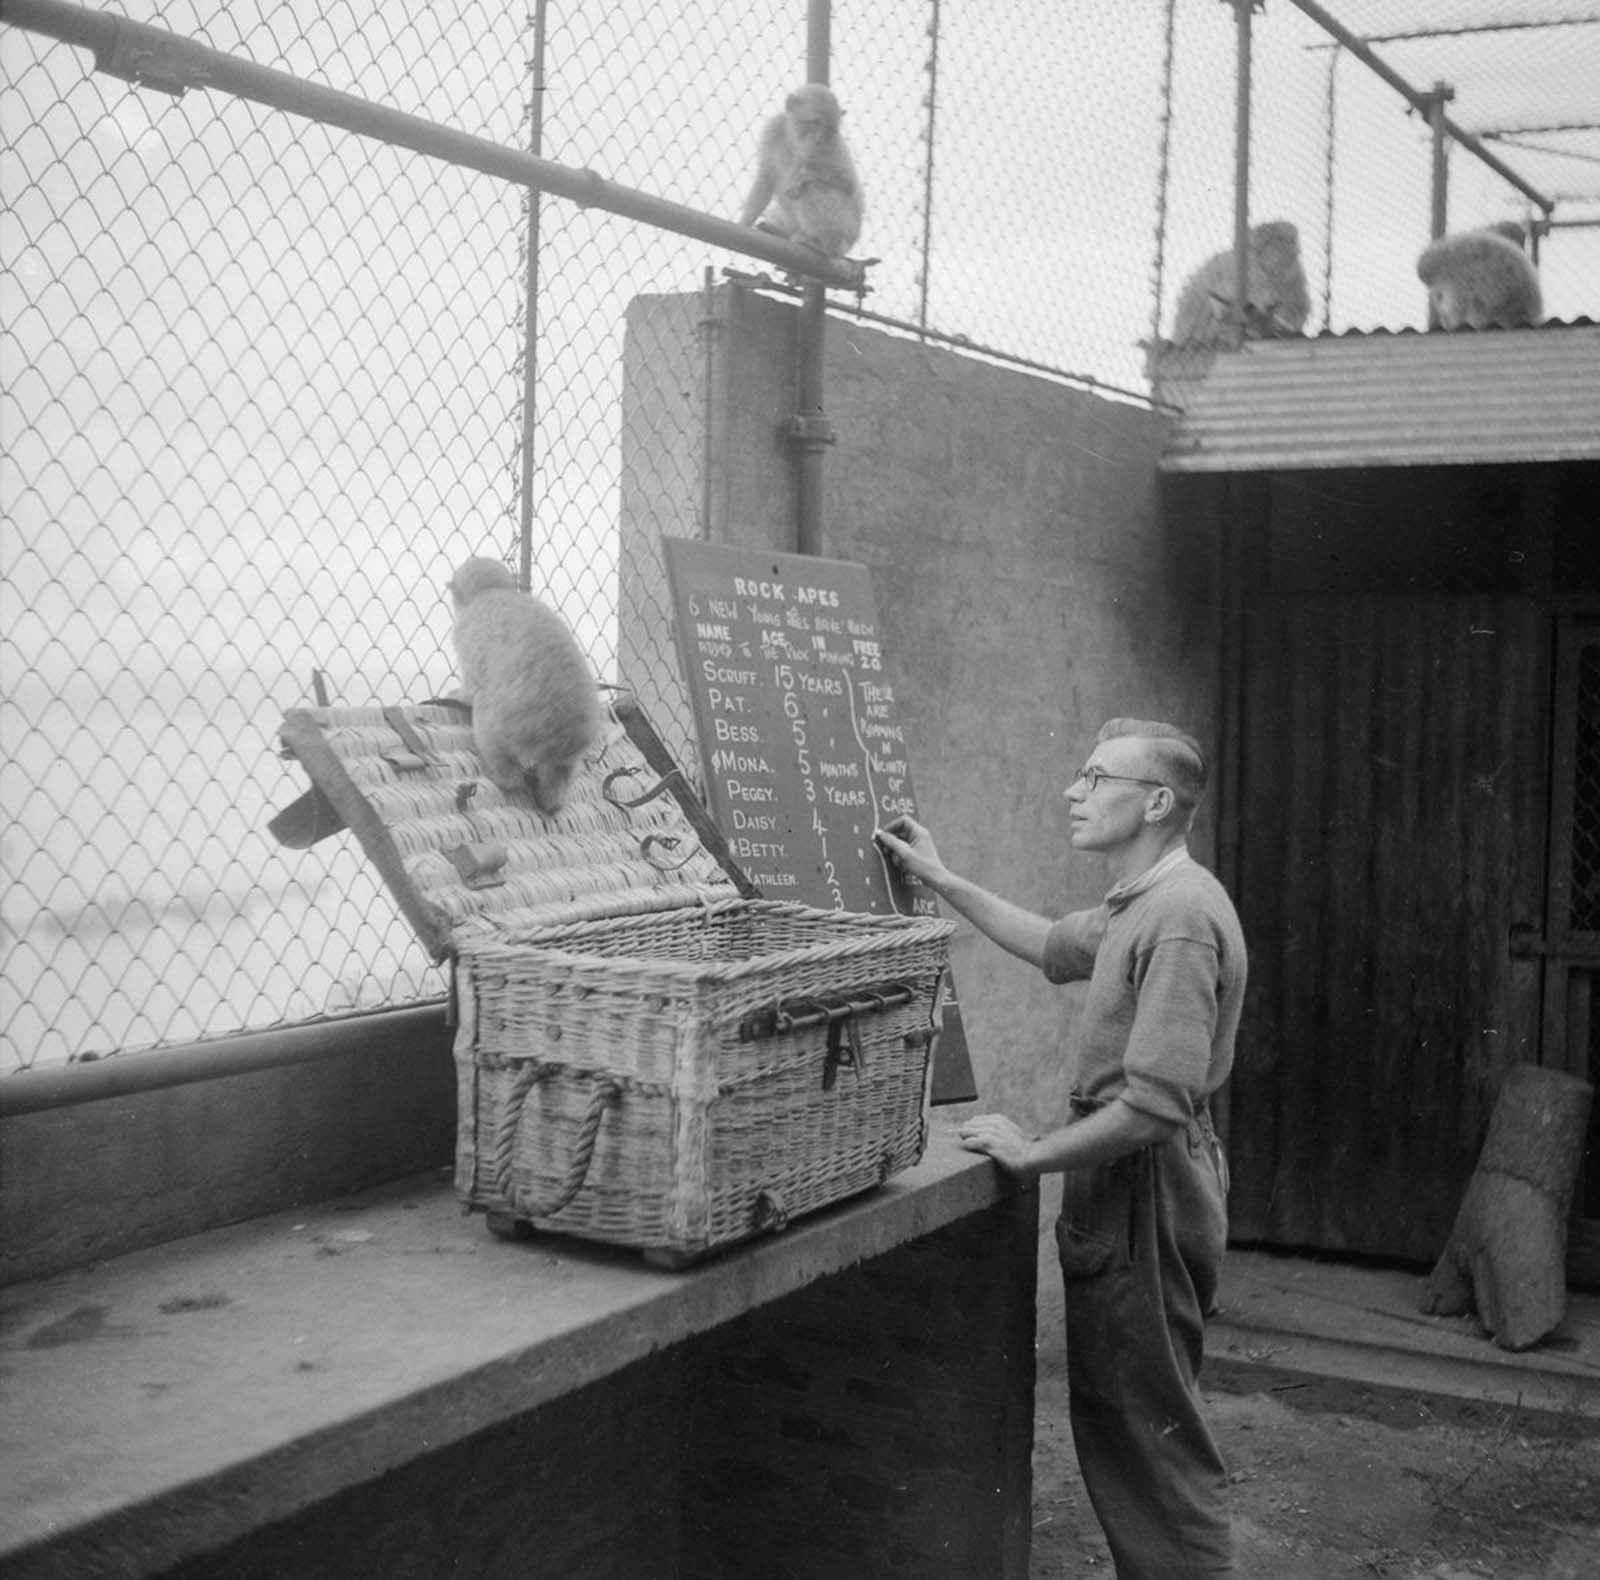 Apes are checked in at Gibraltar. Churchill had heard a legend that if the apes ever left the rock, Gibraltar would cease to be a British colony, so he sent in shipments of primates to forestall that.